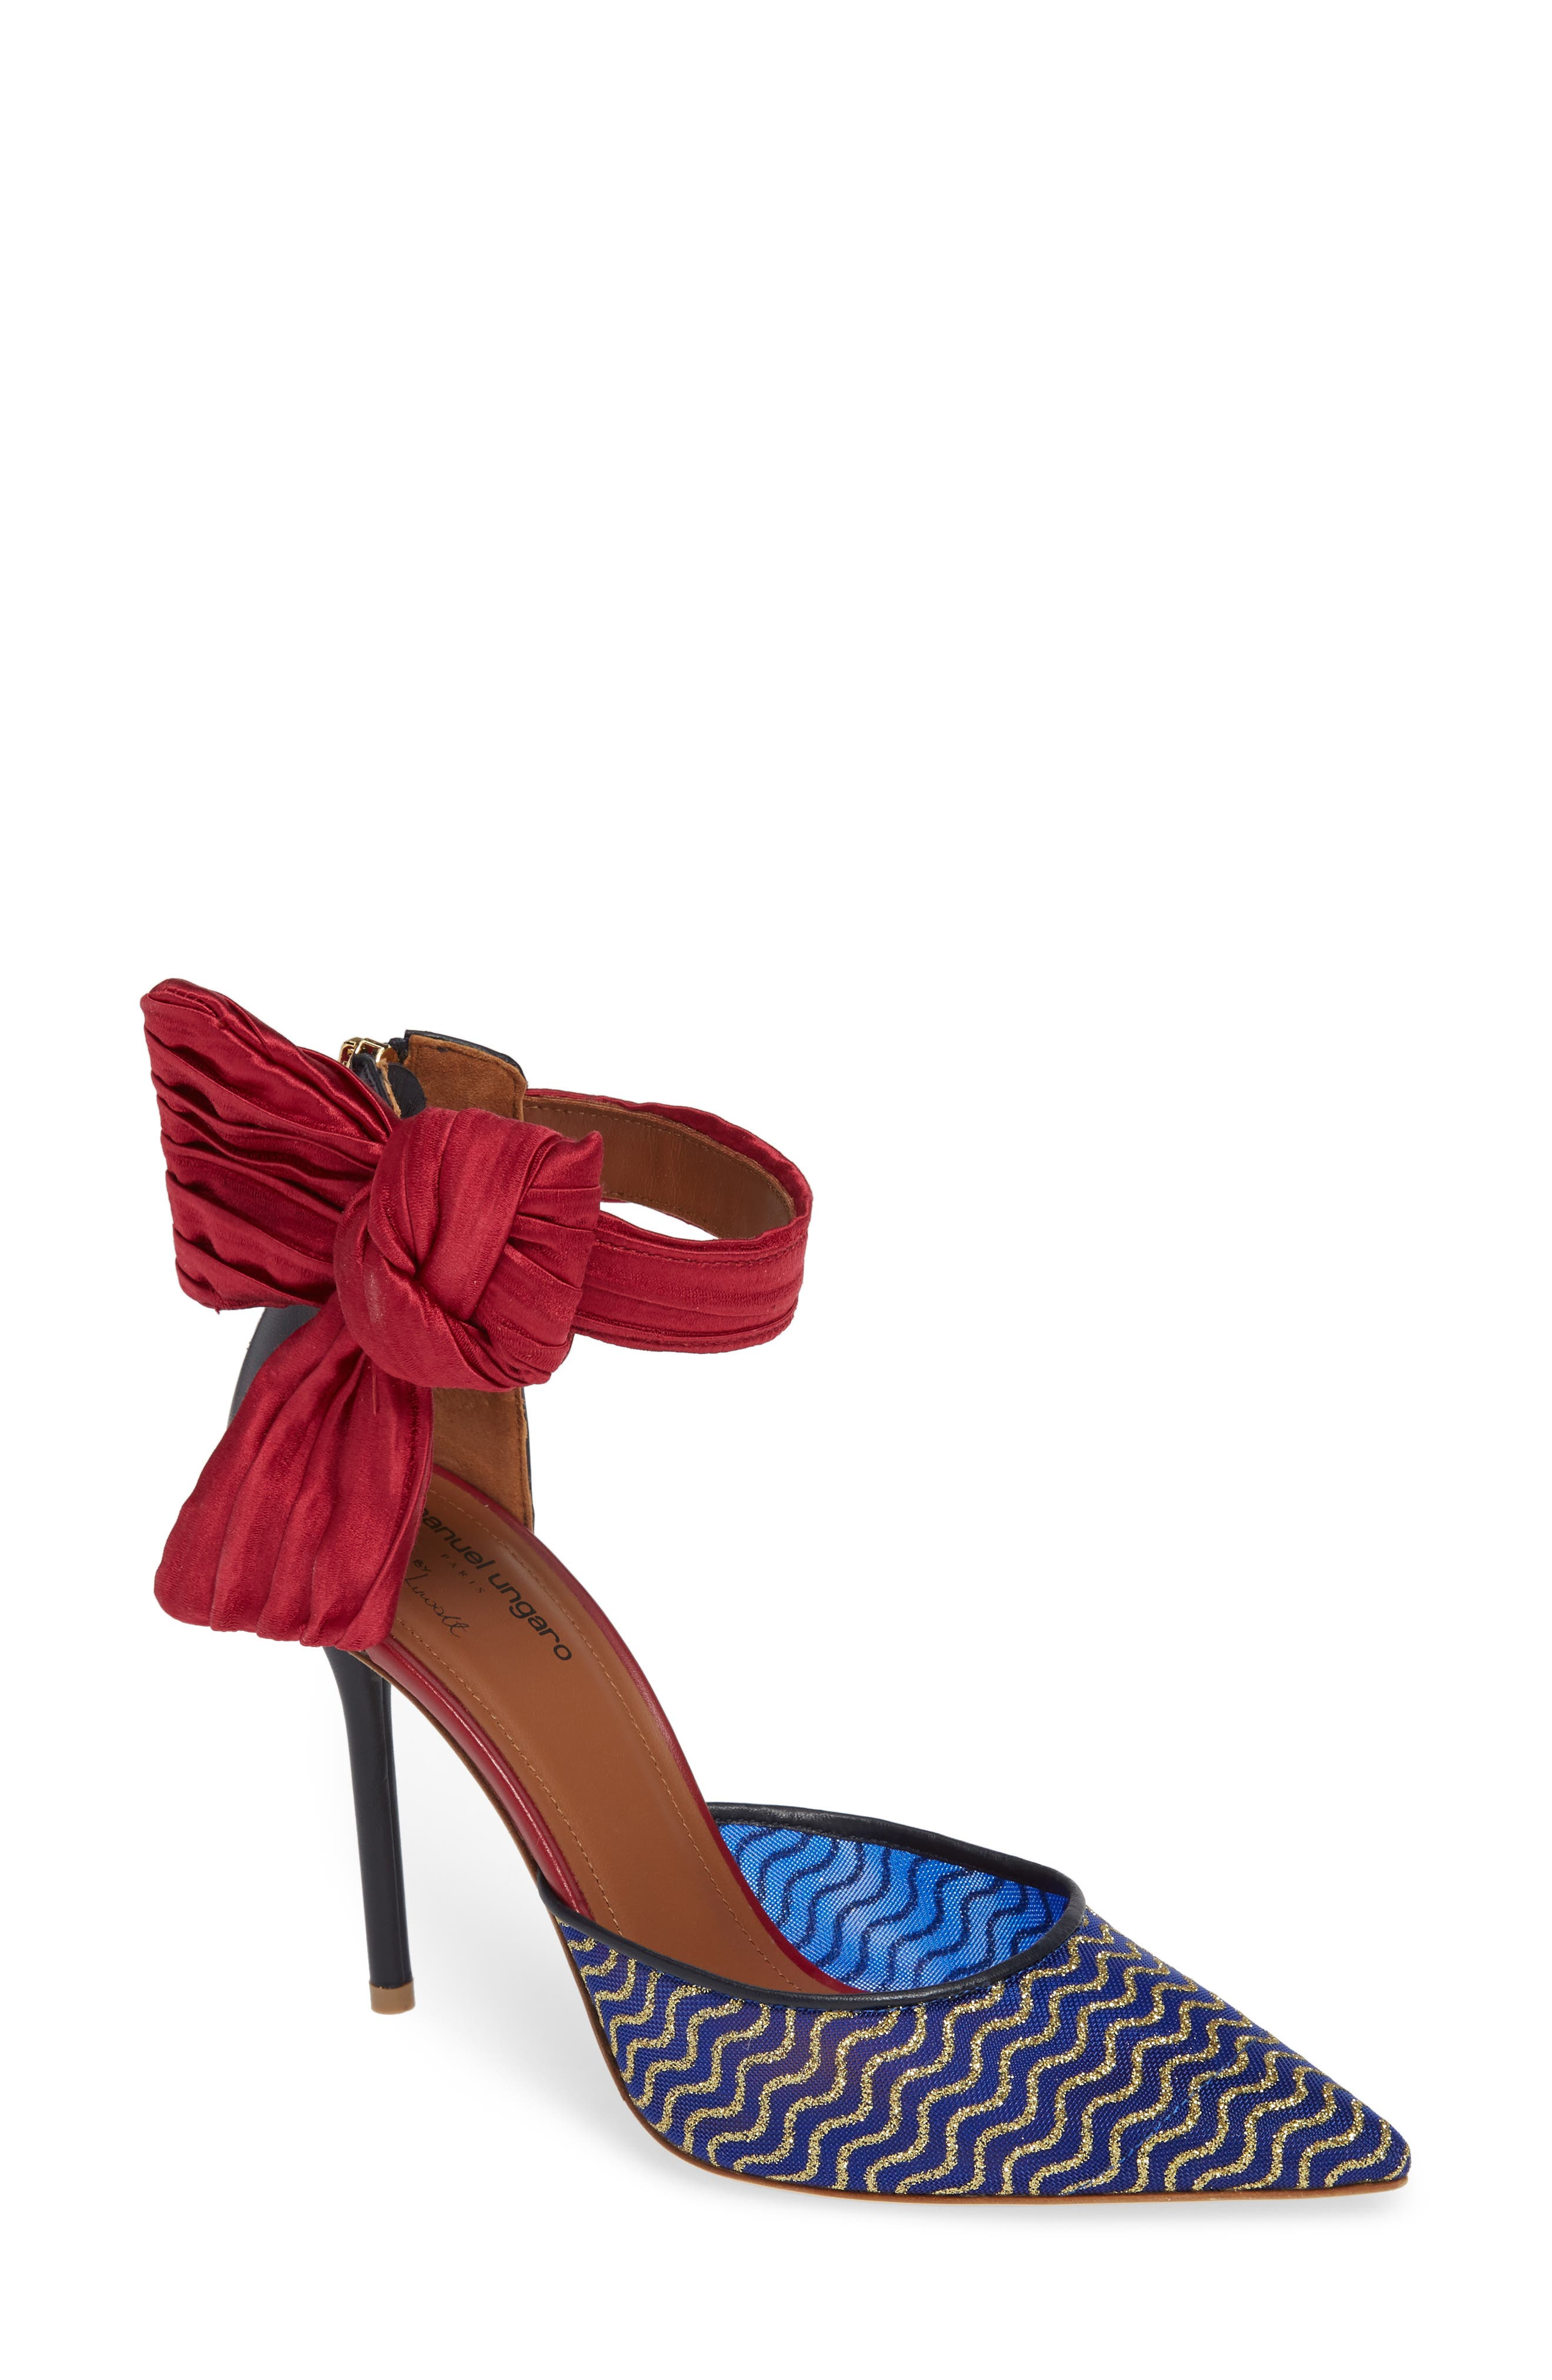 Elle Bow Pump,                             Main thumbnail 1, color,                             BLUE/ RED